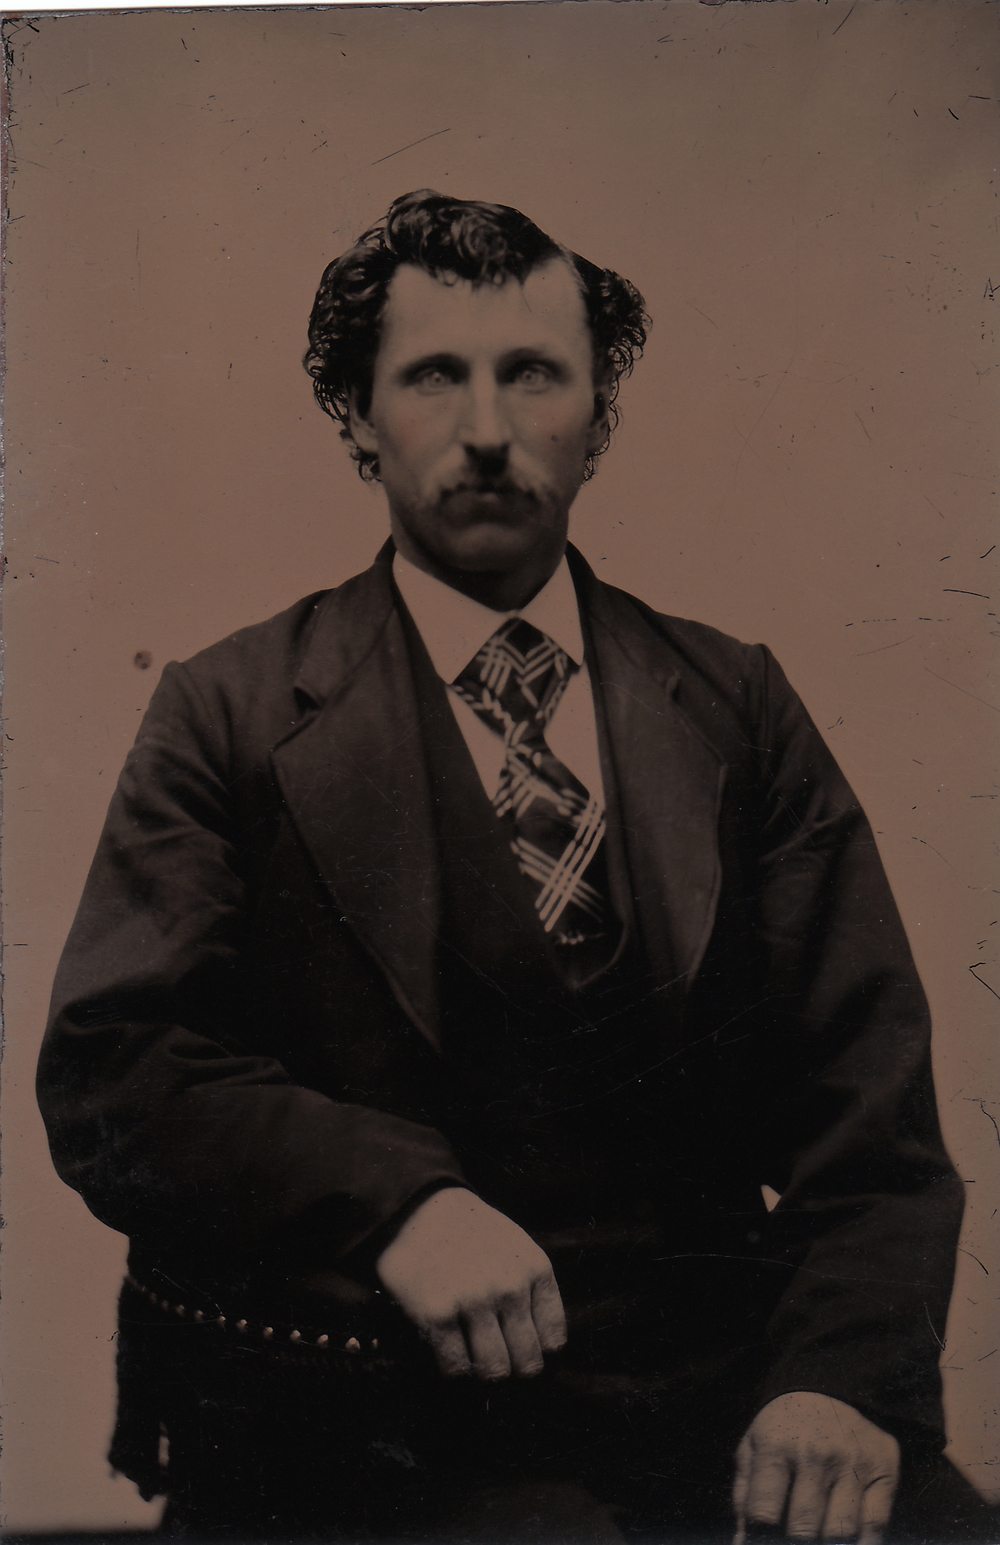 M. Castleton, 1896  Found tintype, 2014   M. Castleton's Tin Digital assembly with text, 22 January, 2015  M. Castleton's Tin is a collaboration between Jay Jurisich and  Tennyson Woodbridge  and may be reproduced in part or in full, expressly or unexpressedly,  assuming  it is credited as such...up until a period of 75 years, after which point any such credit will be strictly forbidden